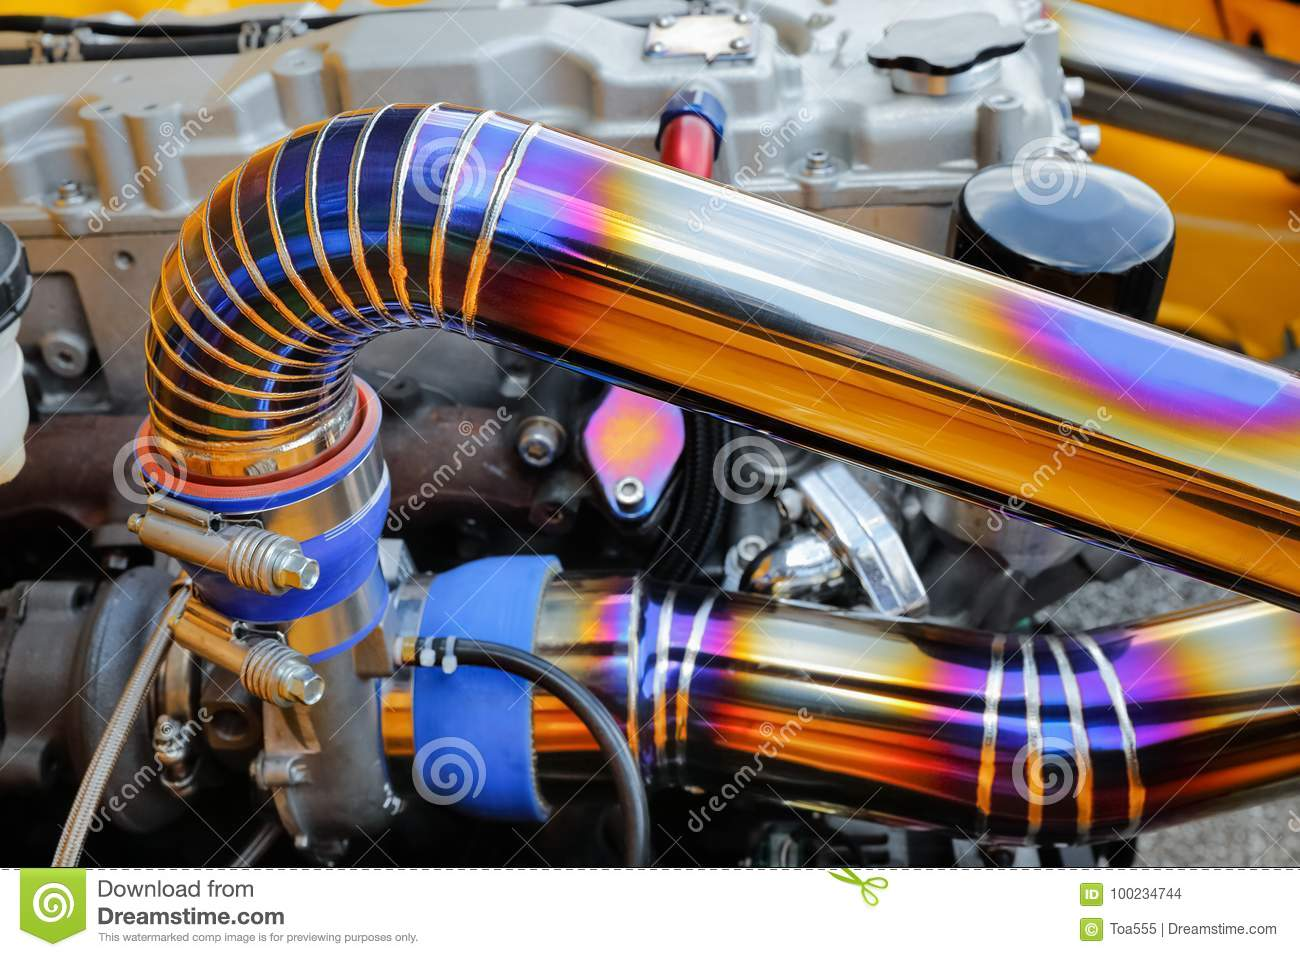 Tig Welded Seam On Stainless Steel Pipe In Race Car Stock Photo Image Of Production Stainlees 100234744